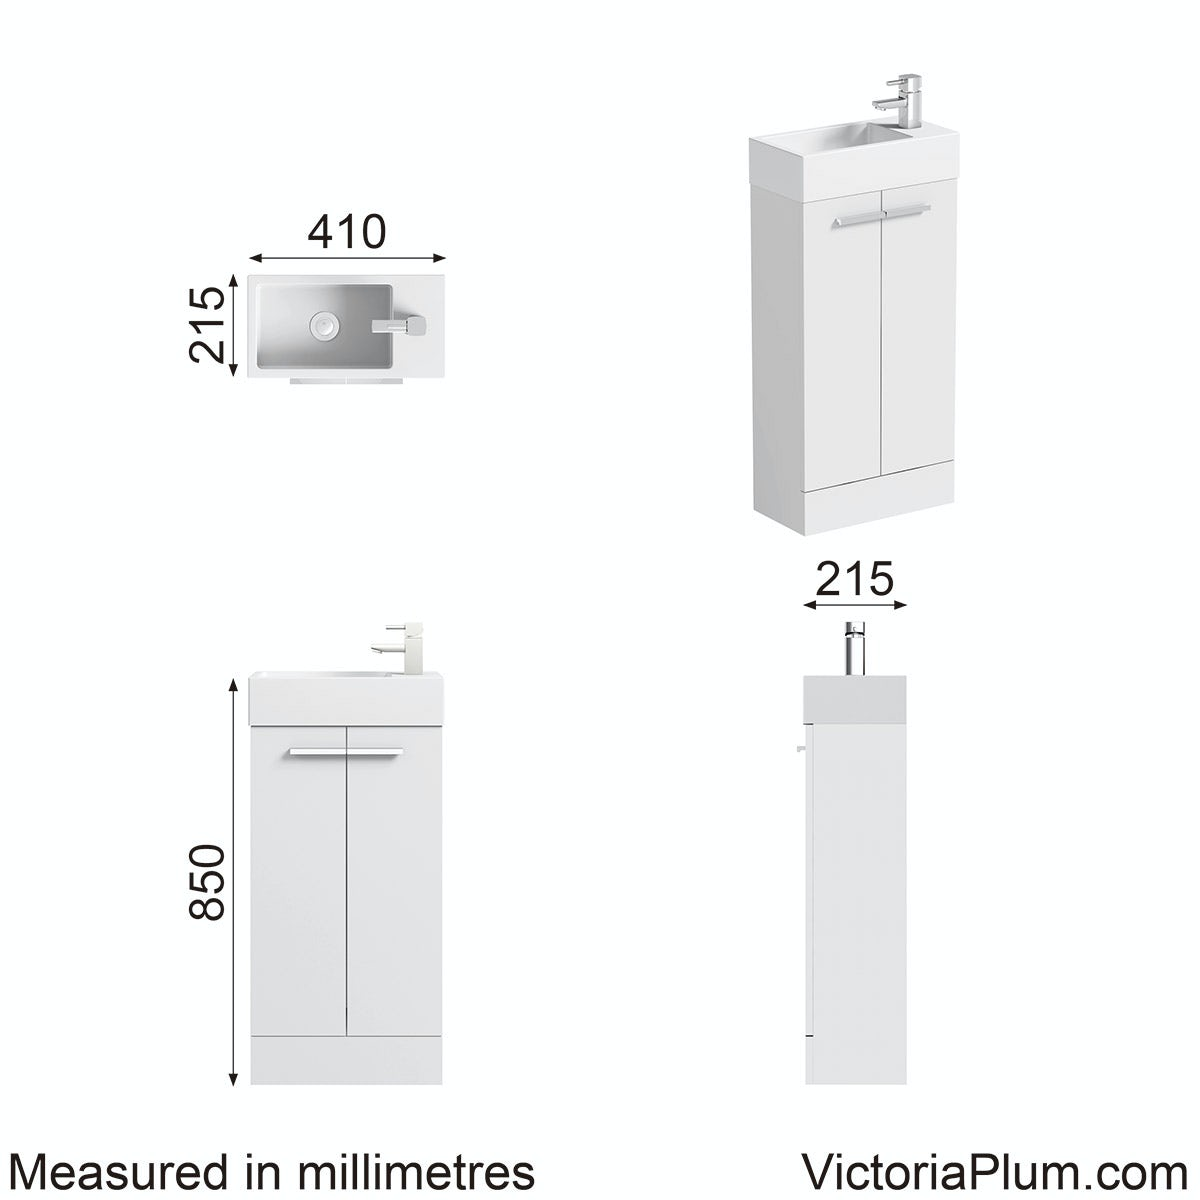 Dimensions for Orchard White cloakroom unit with resin basin 410mm